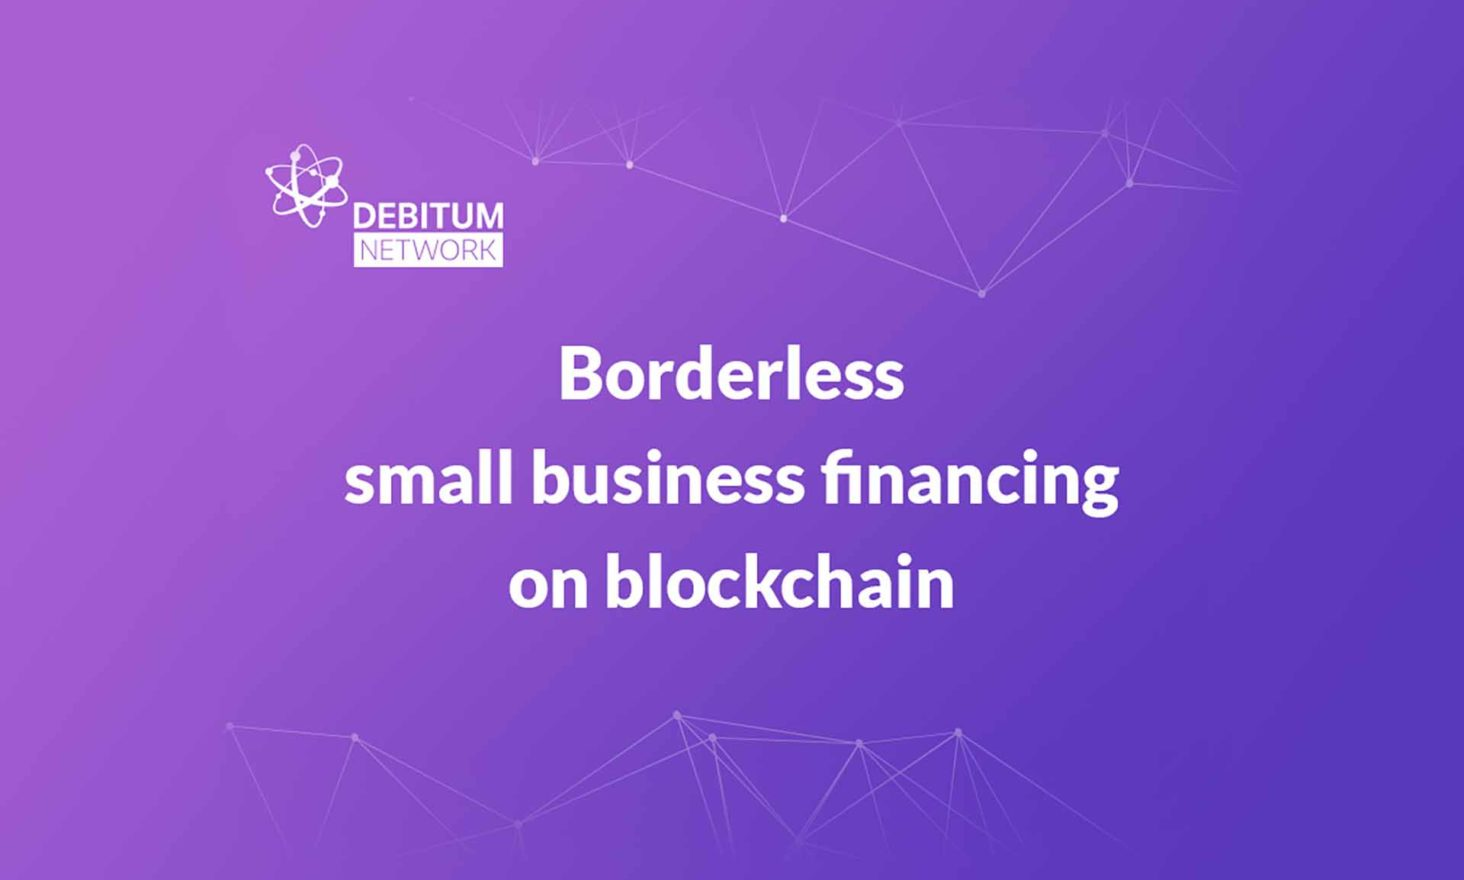 Debitum Network Leverages Ethereum Blockchain to Deliver Game-changing Small Business Finance Solution